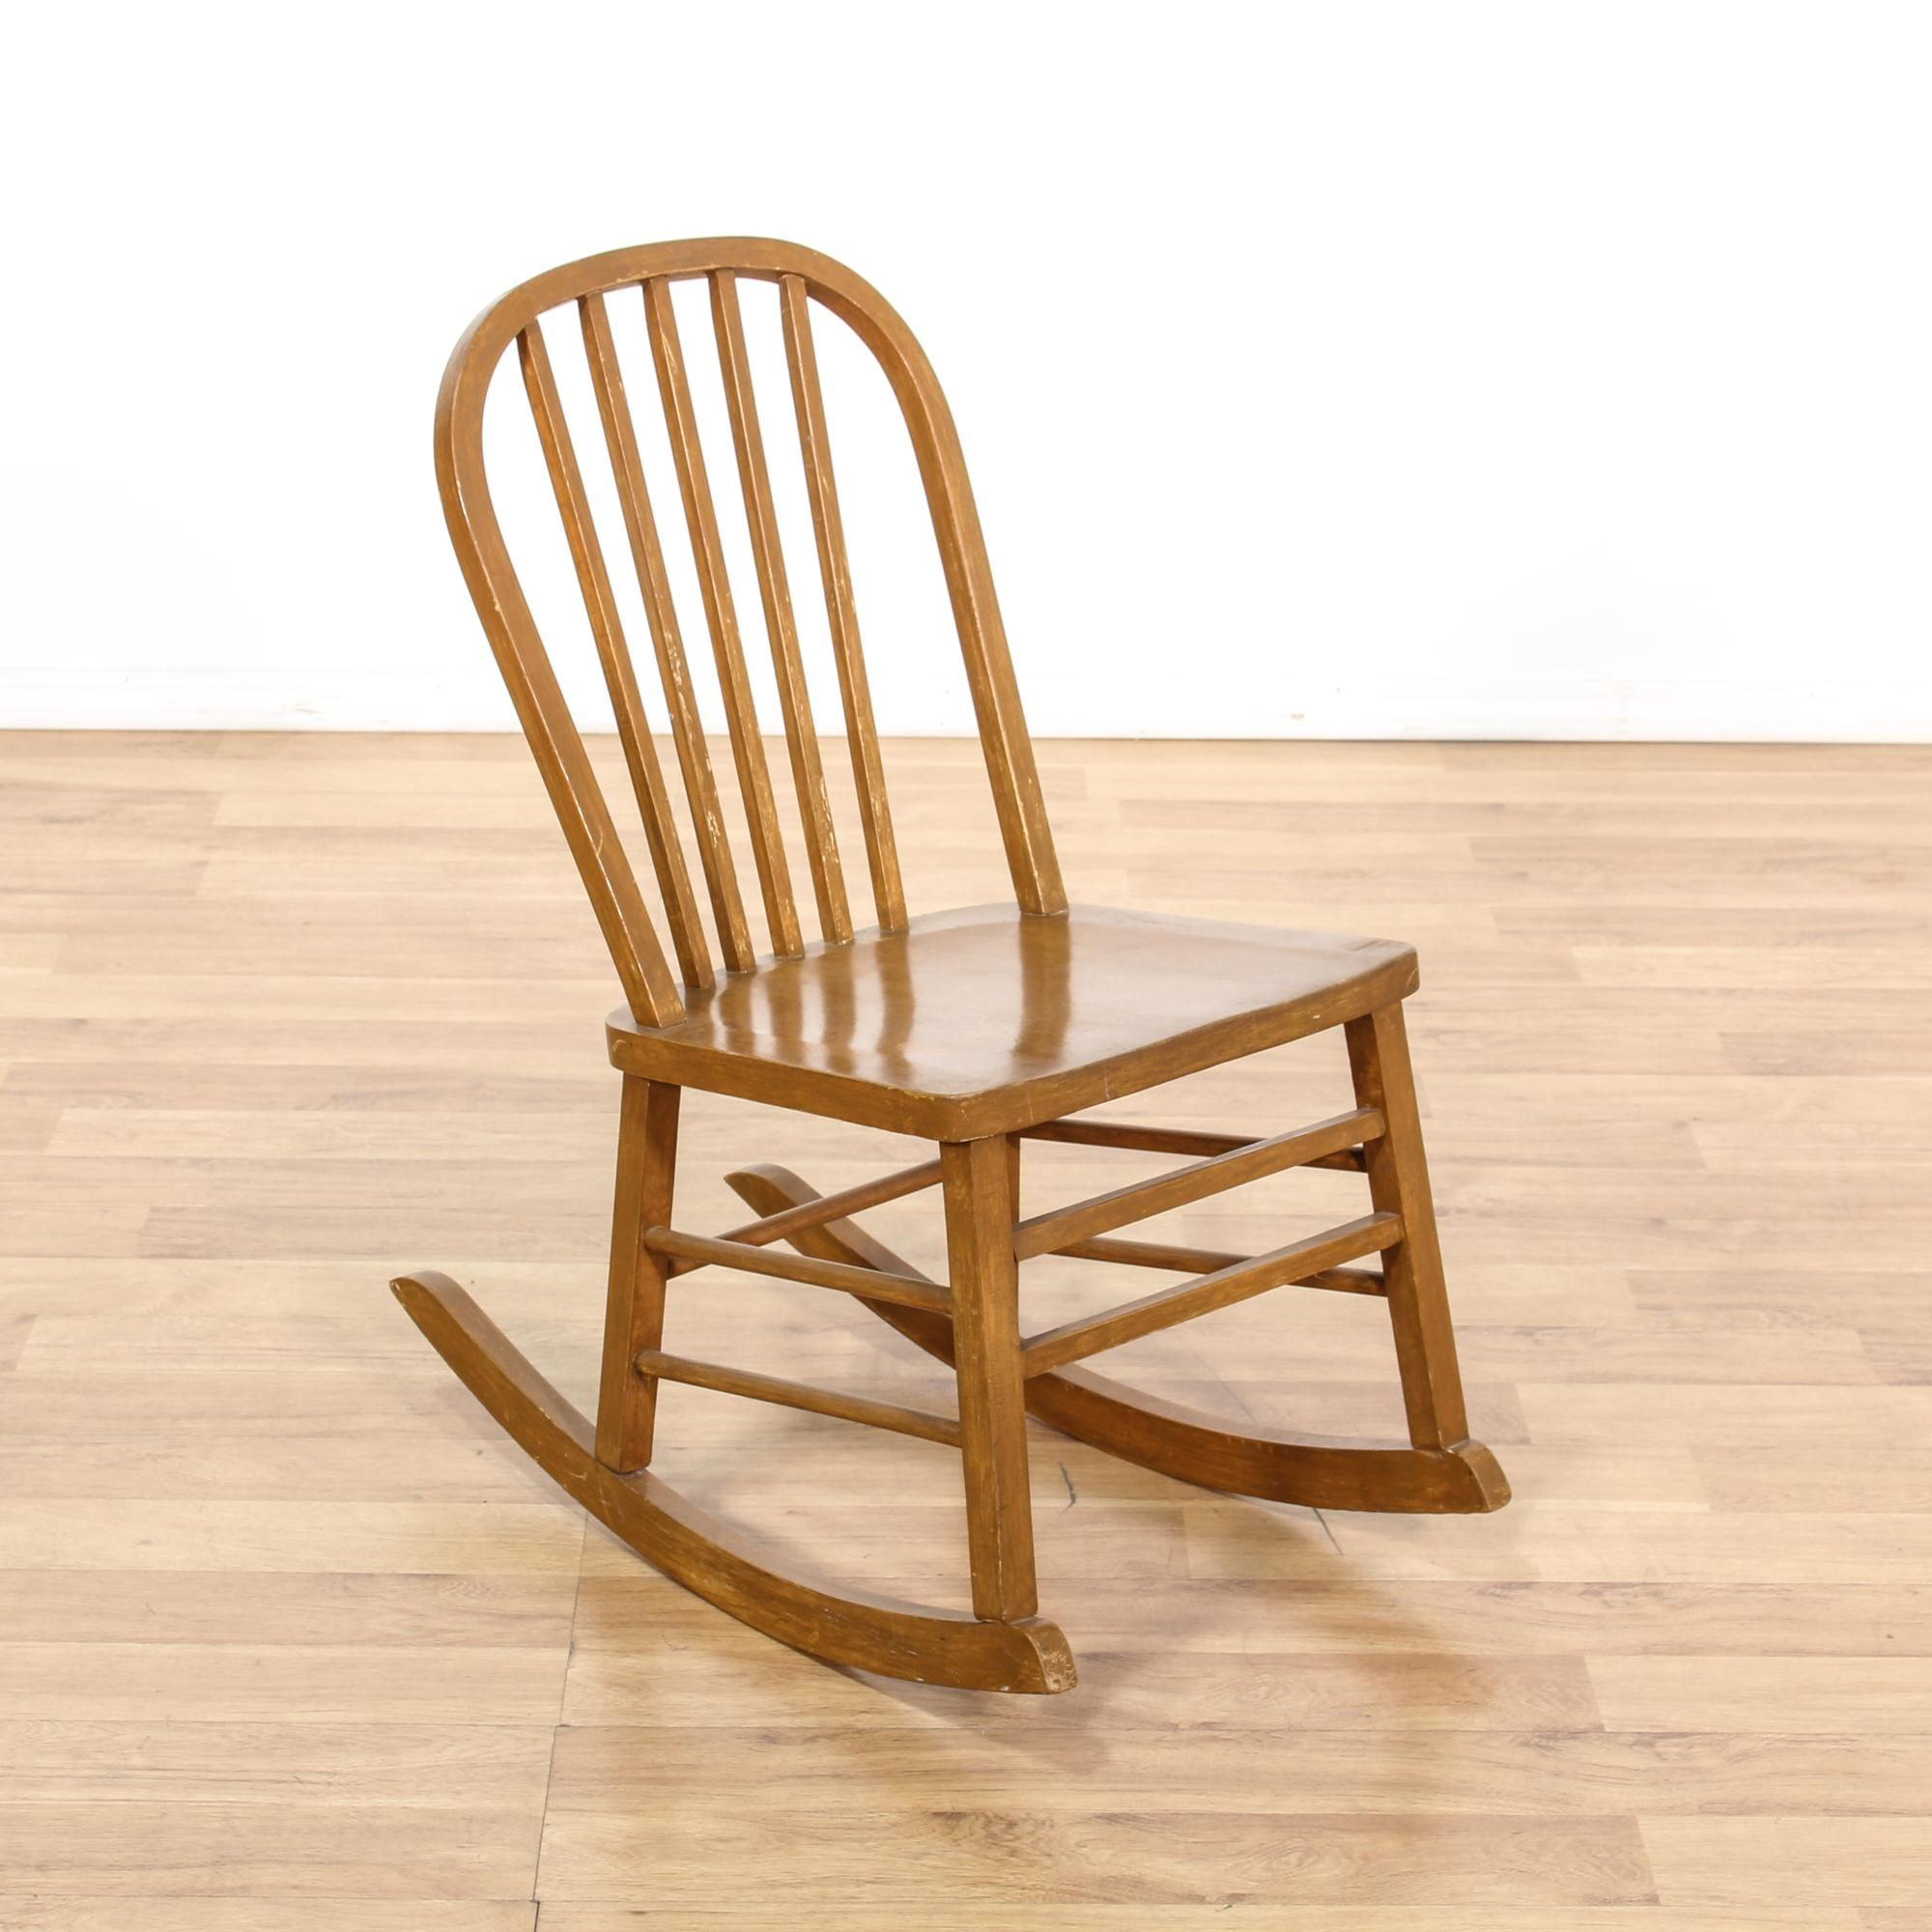 This Childu0027s Rocking Chair Is Featured In A Solid Wood With A Distressed  Maple Finish.